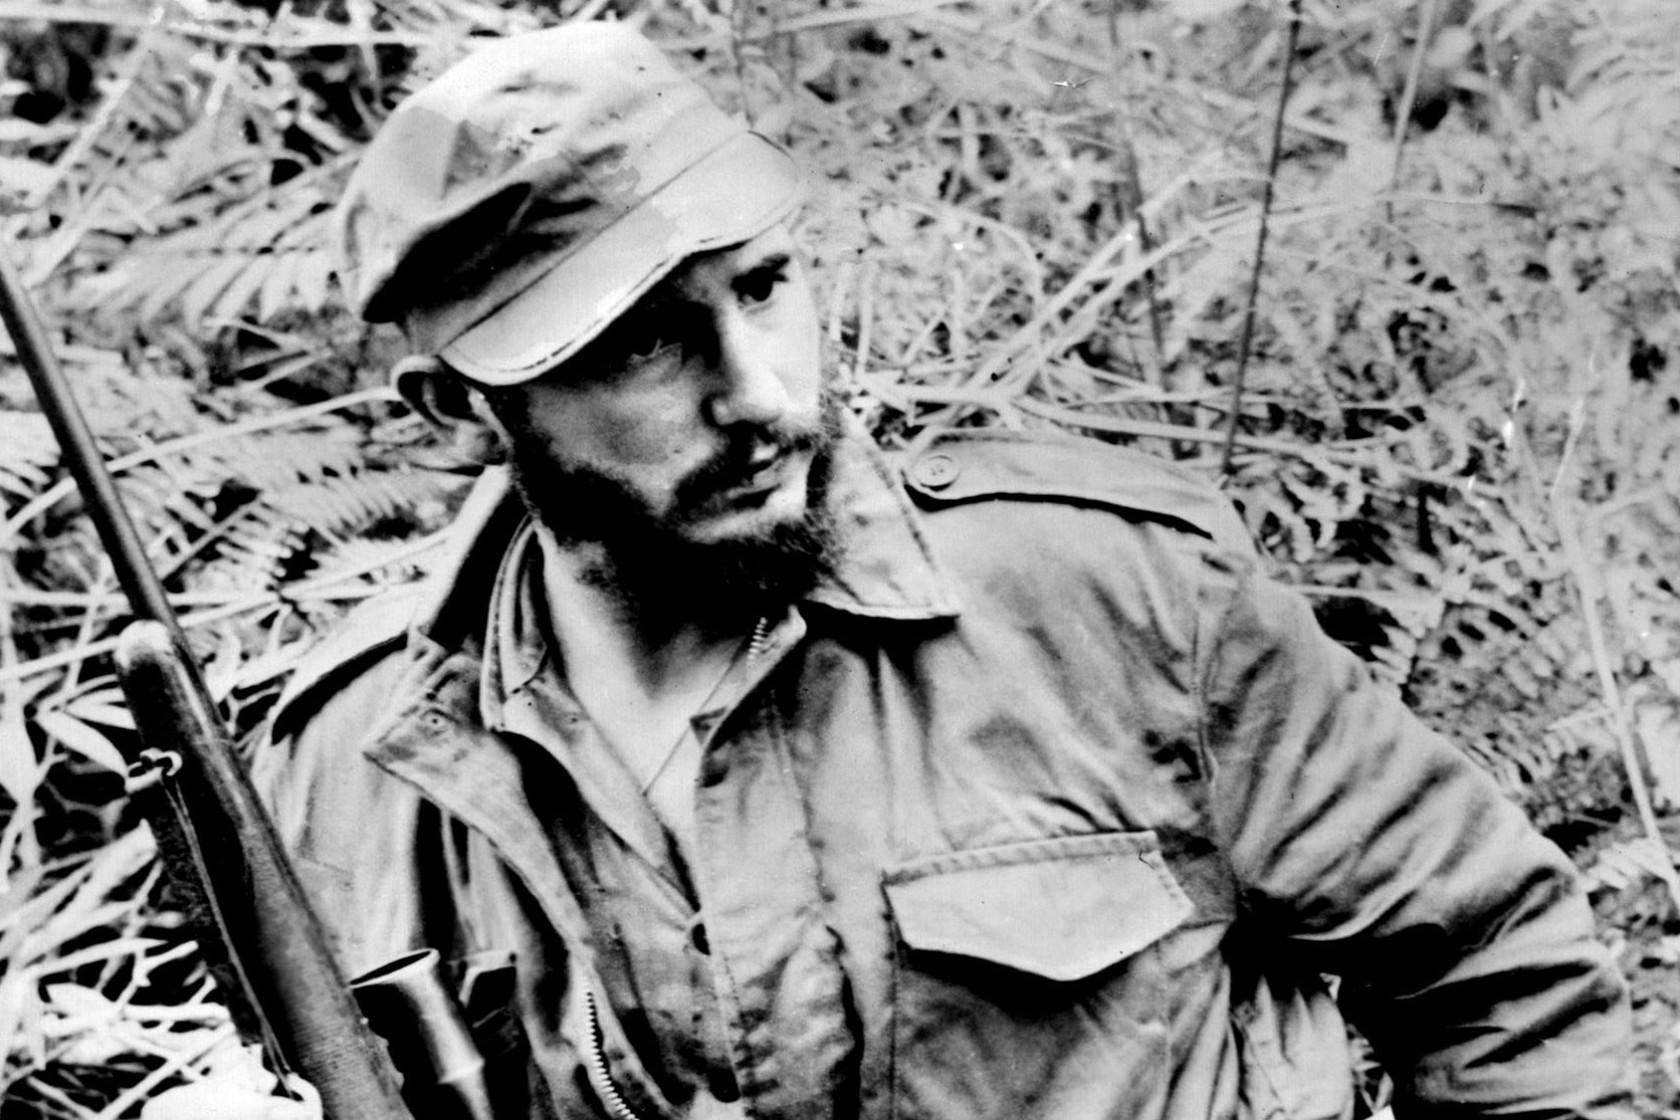 Castro posing with a Rifle.